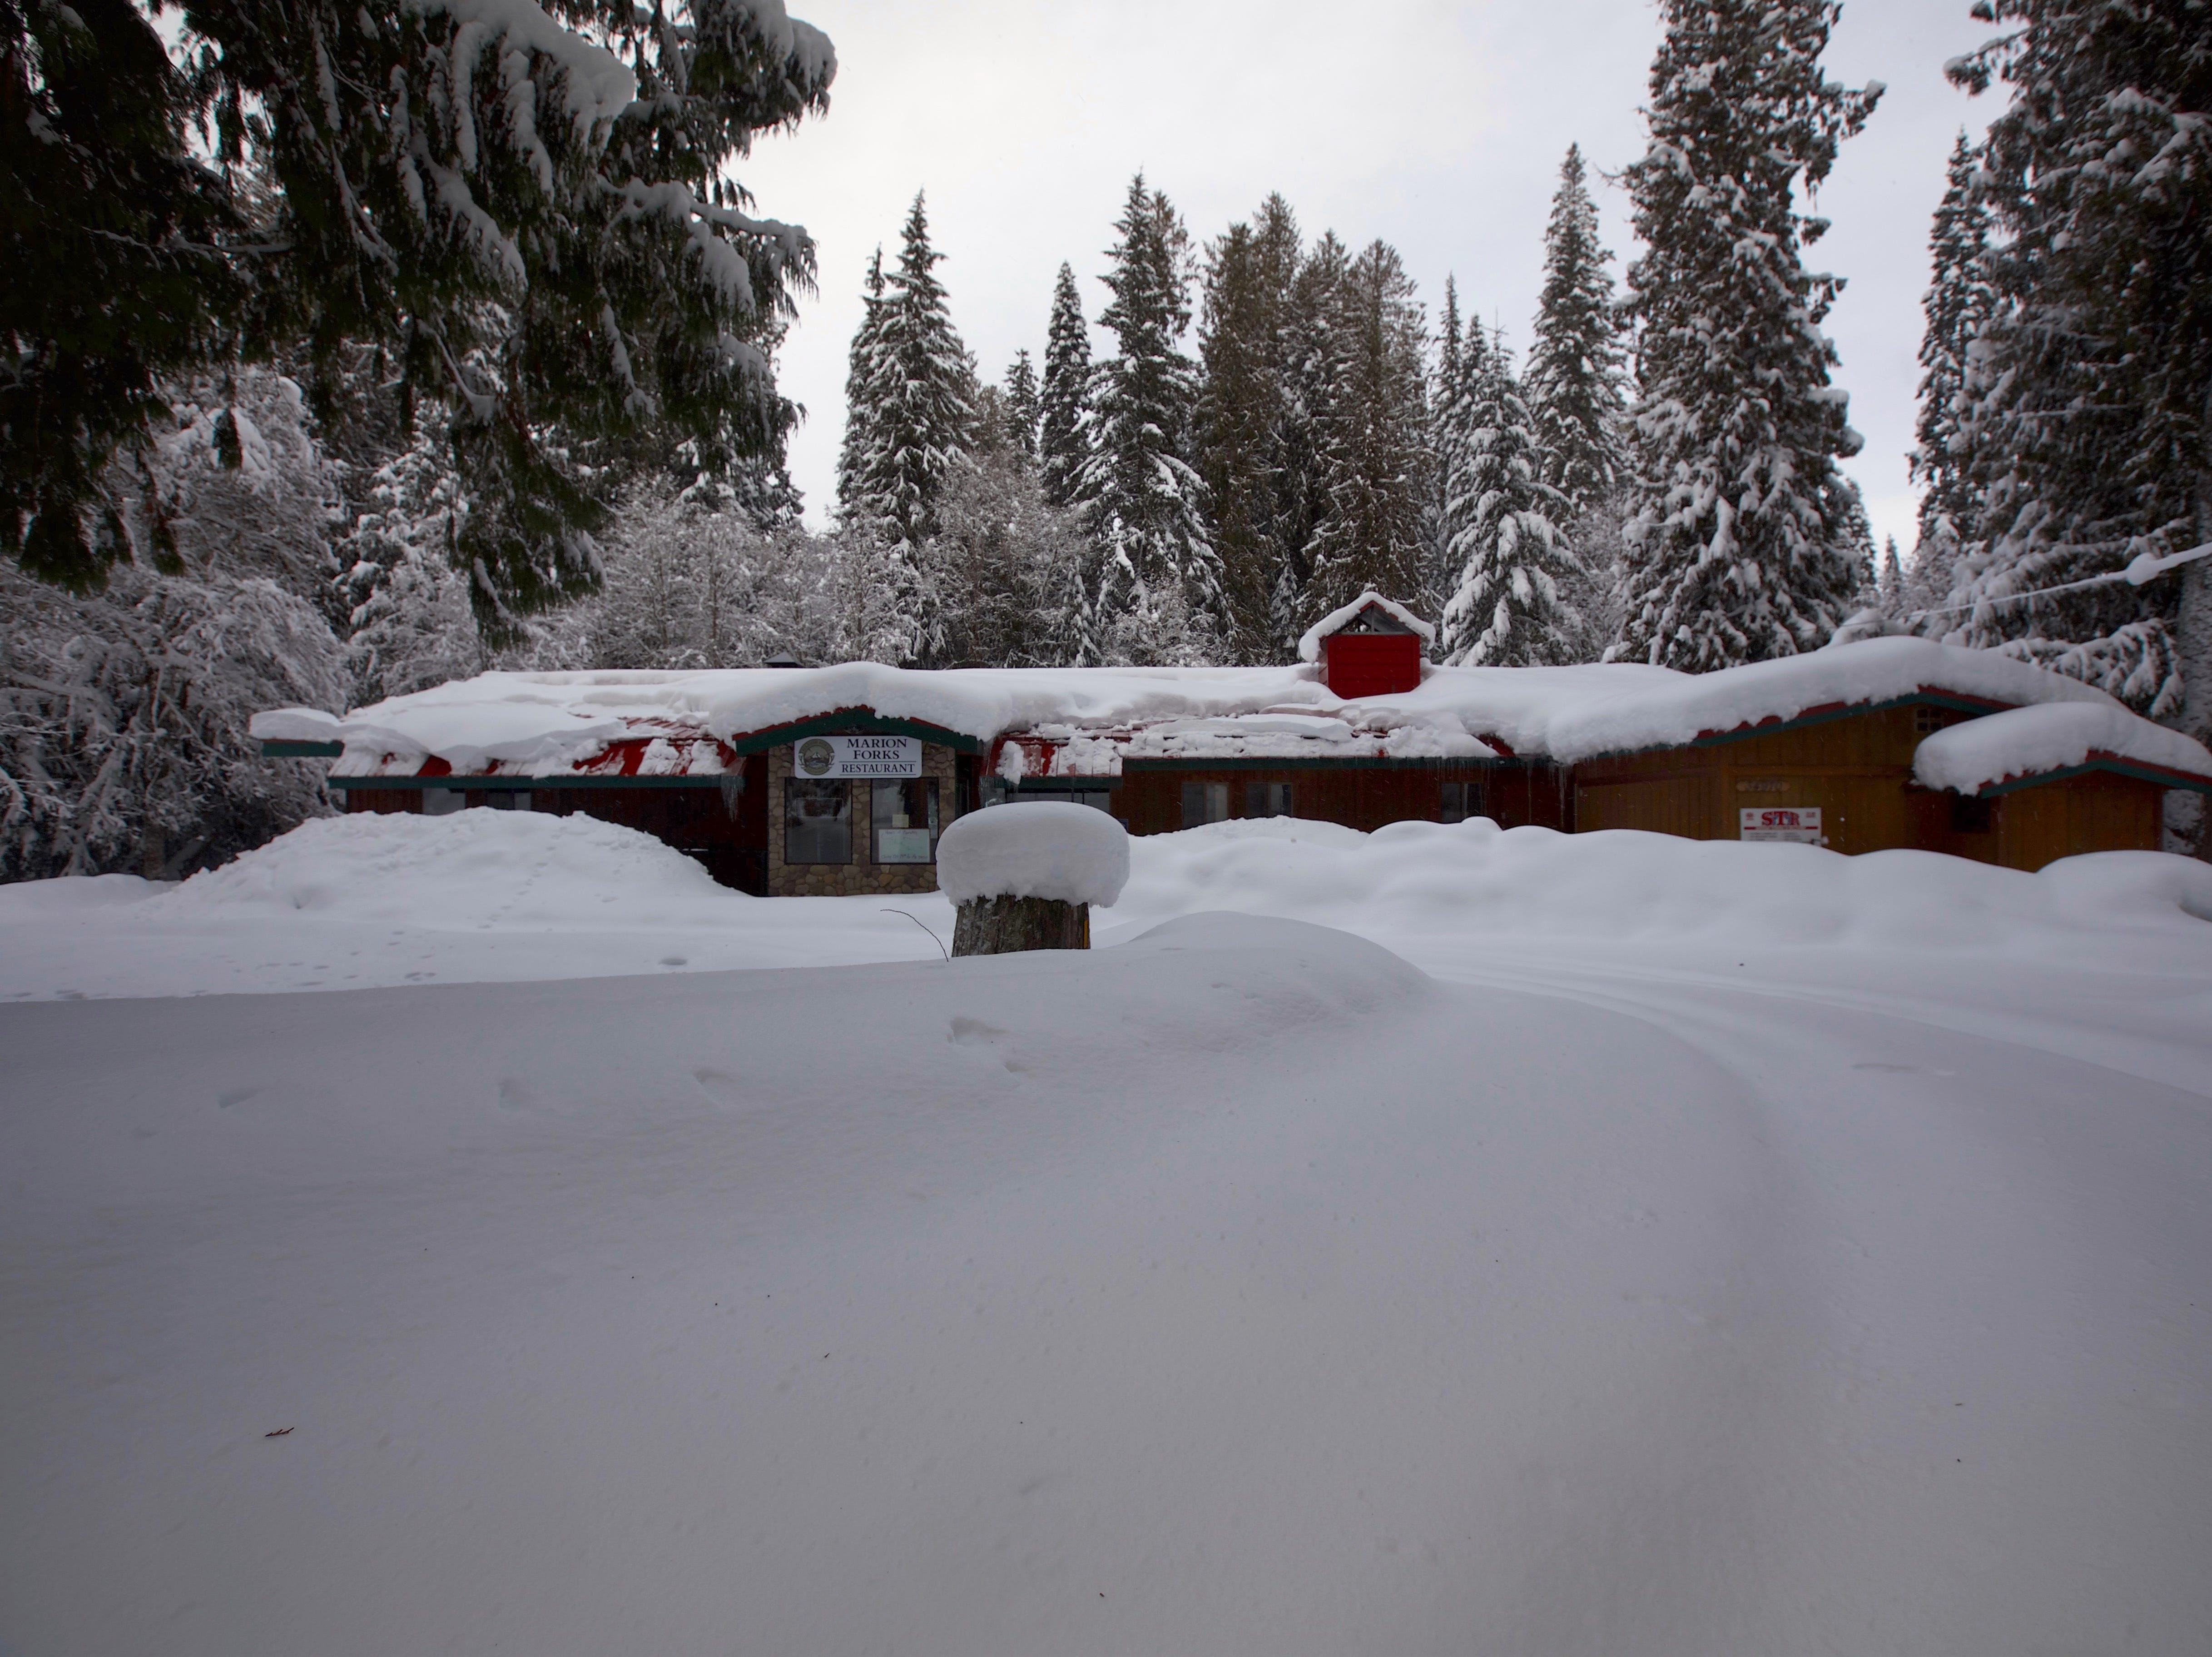 Marion Forks restaurant, now closed, covered in snow on Feb. 26, 2019.